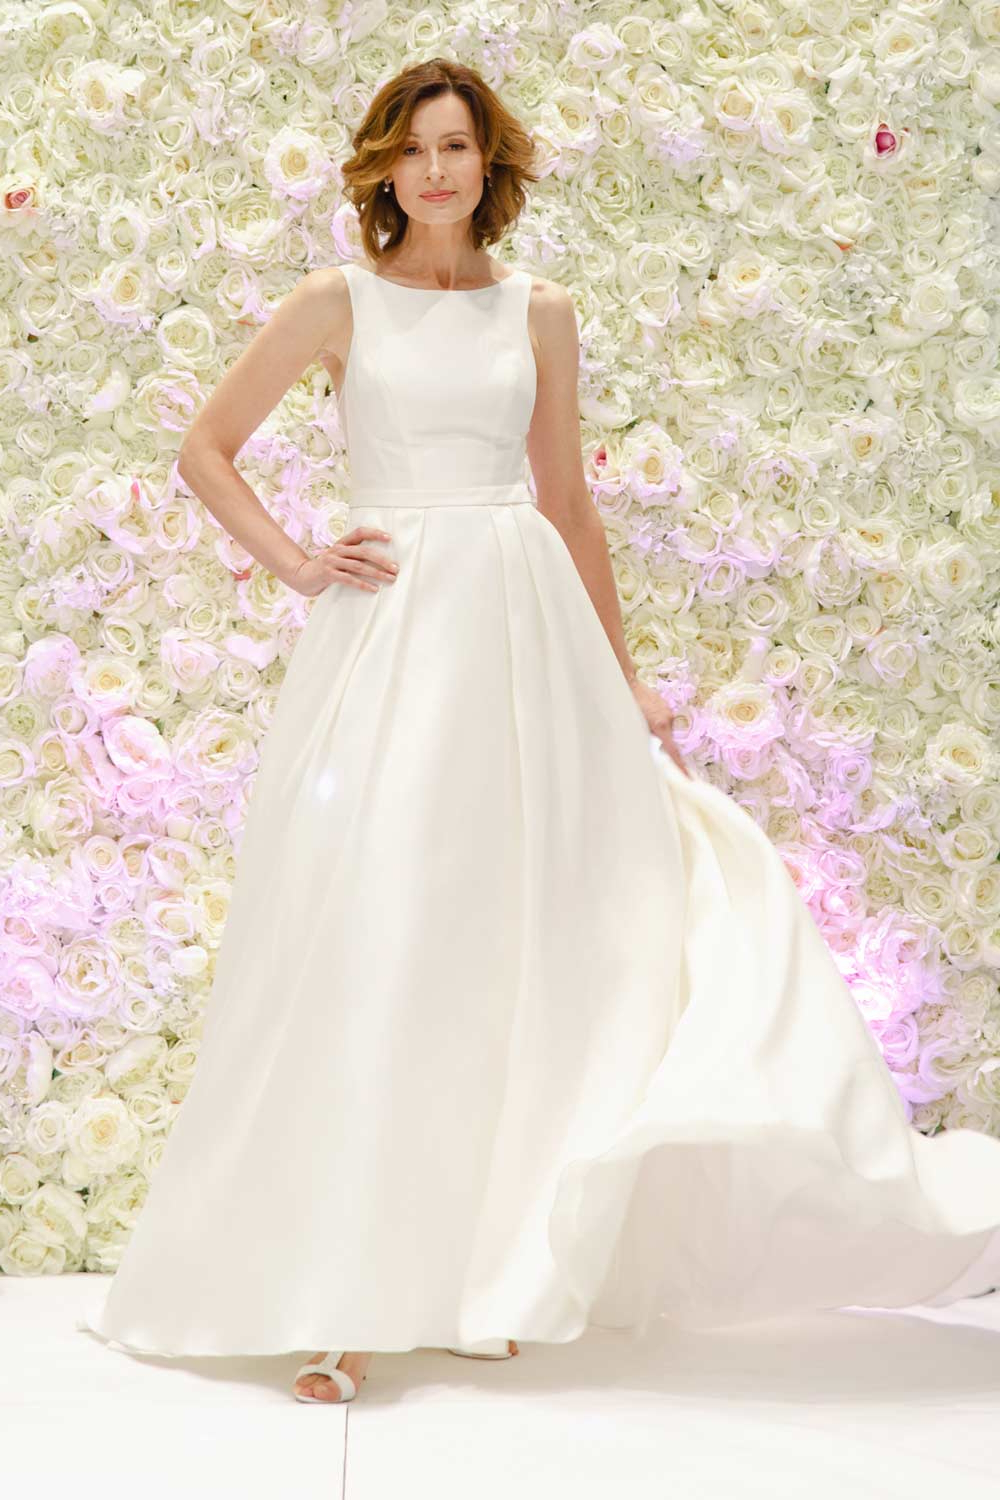 Wedding Dresses For Older Brides: Top Tips And 21 Gorgeous Designs With Regard To Most Recent Sleek And Big Princess Ball Gown Updos For Brides (View 15 of 20)